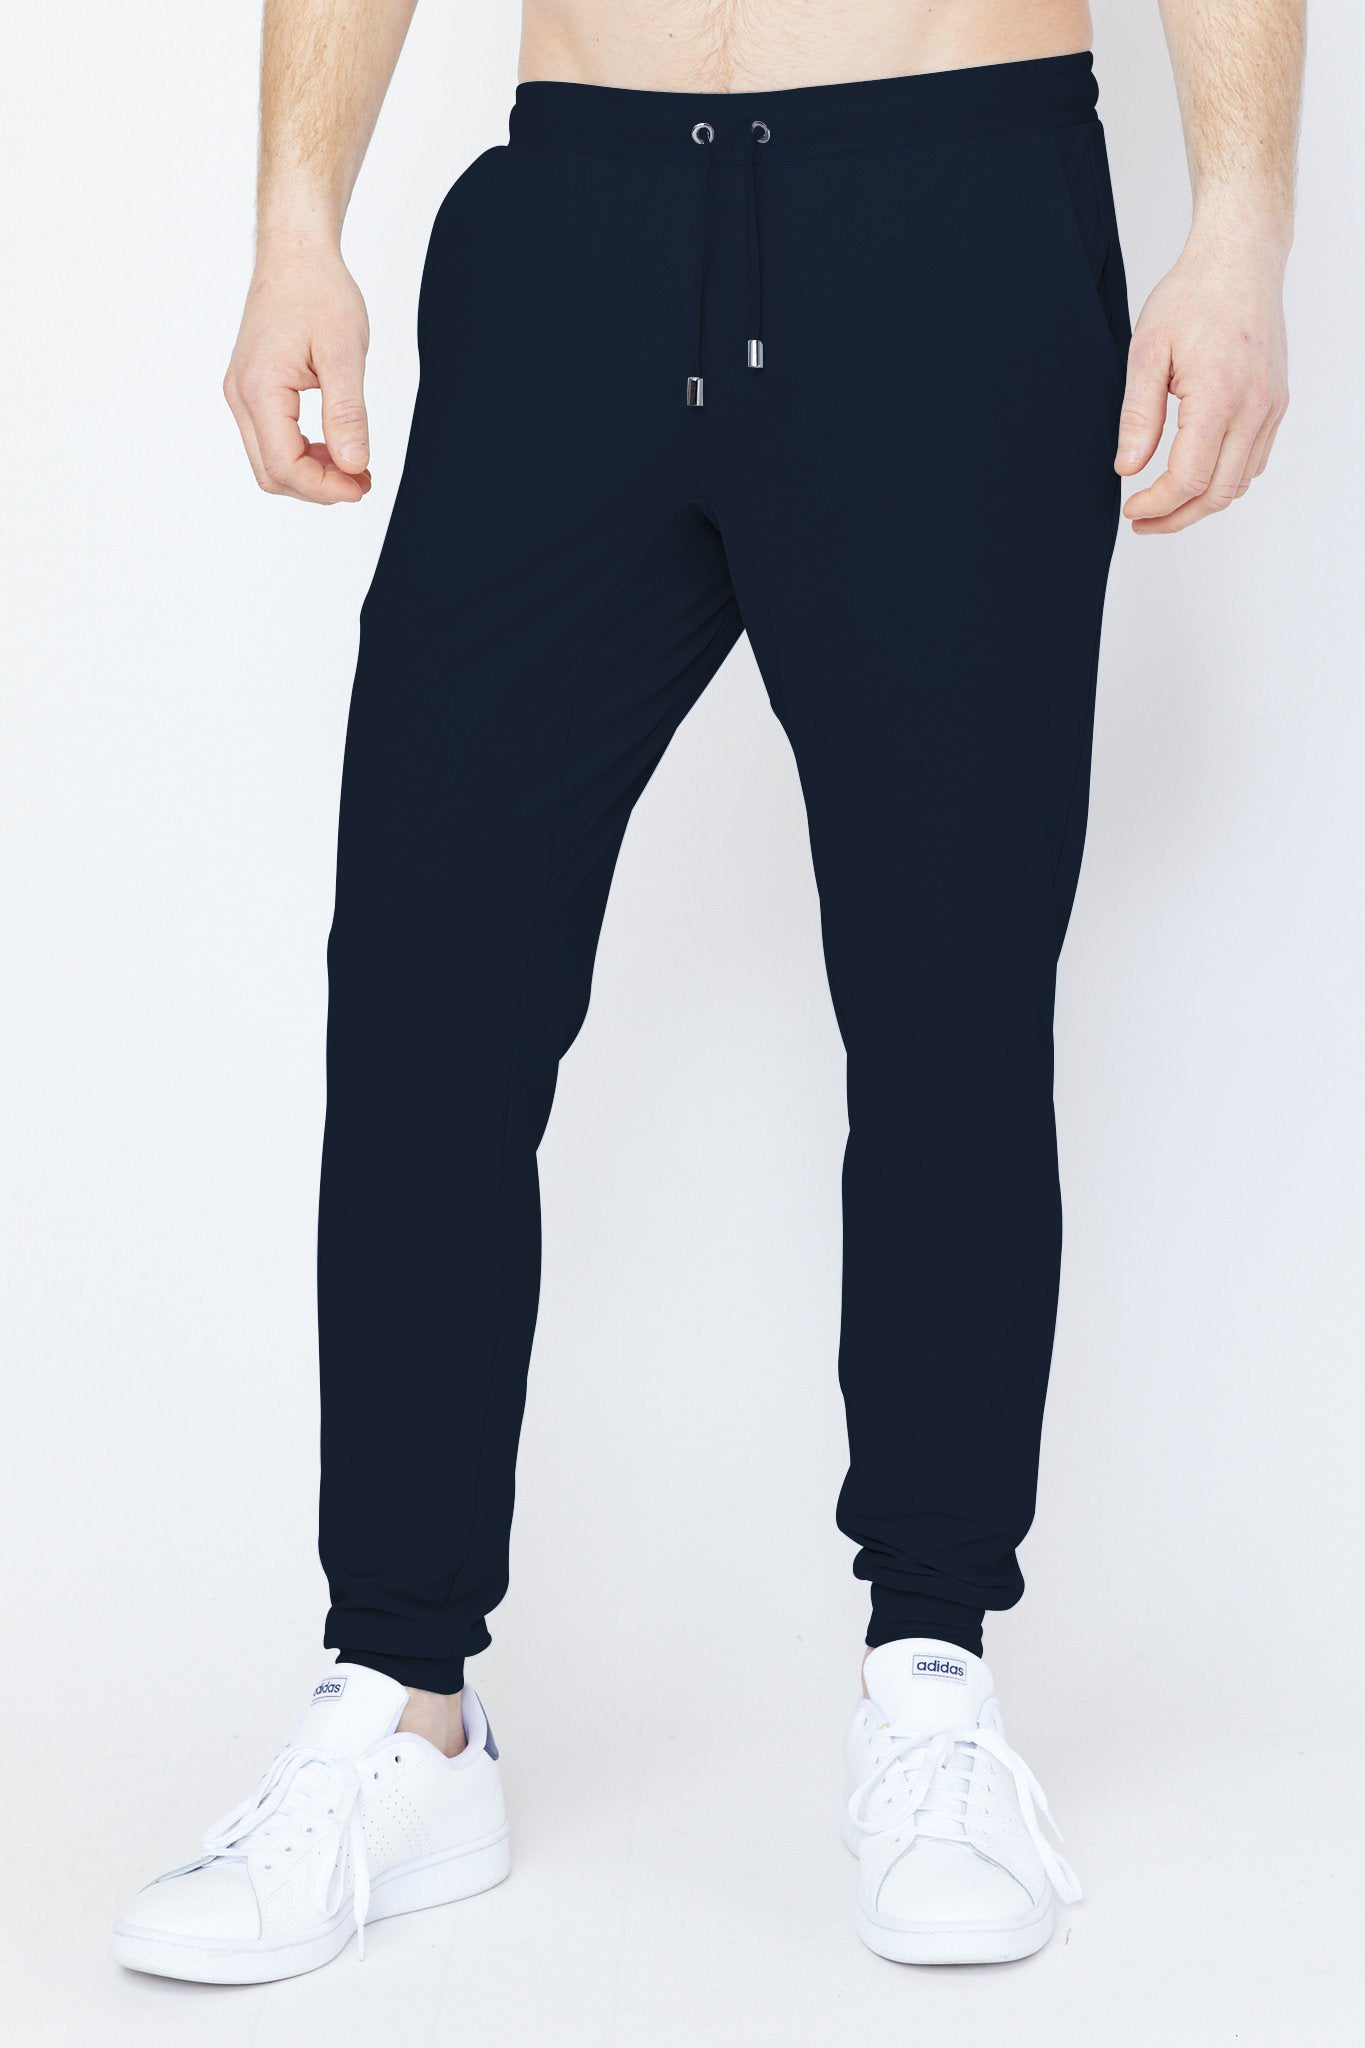 Donahue Jogger in Black